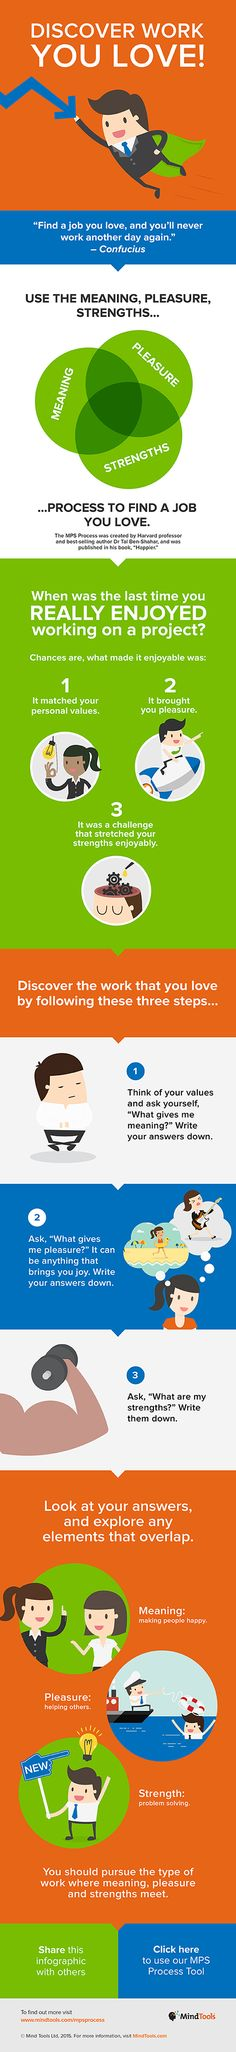 Discover Work You Love Infographic